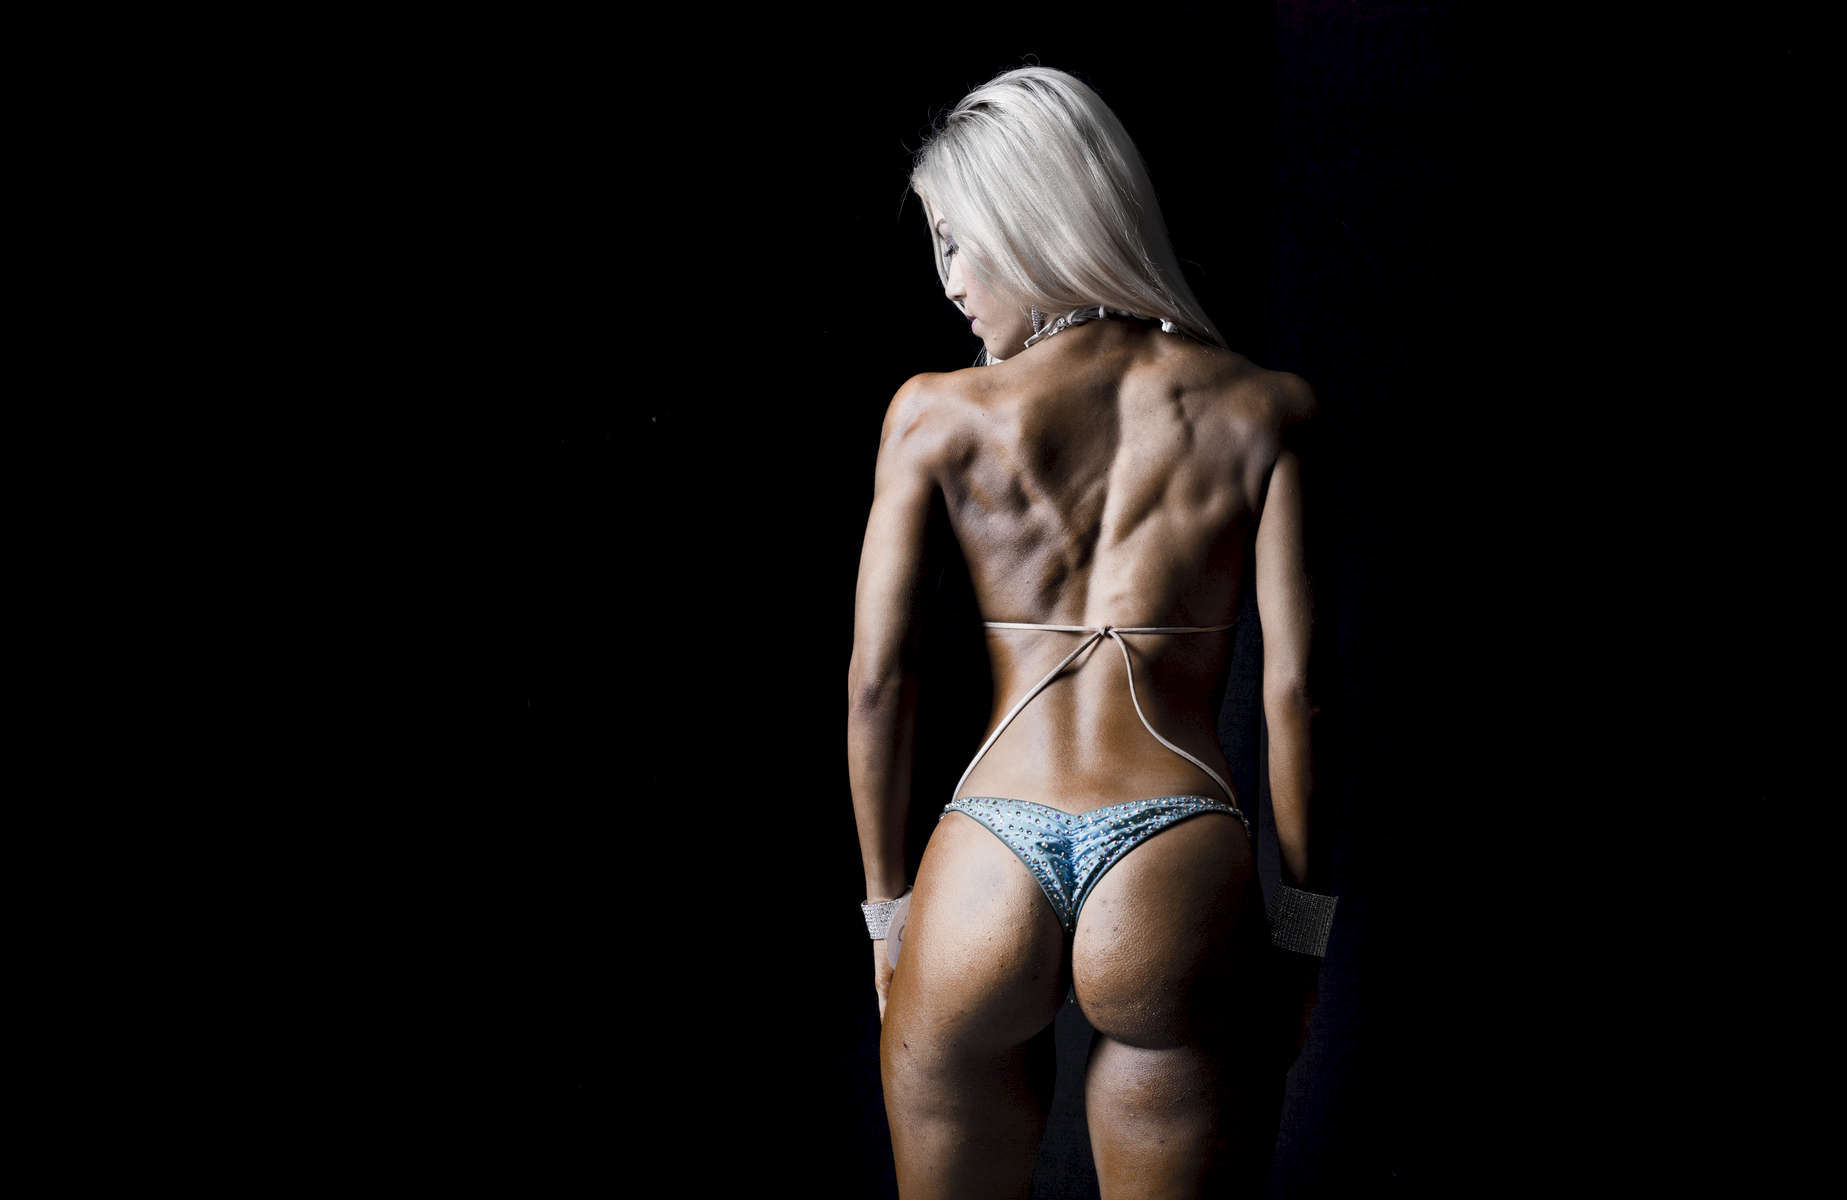 Bodybuilder Rachelle Fawcett poses for a photograph behind the scenes of the 2016 Hong Kong Bodybuilding Championships on 12 June 2016 at Queen Elizabeth Stadium, Hong Kong, China. Photo by Victor Fraile / Power Sport Images